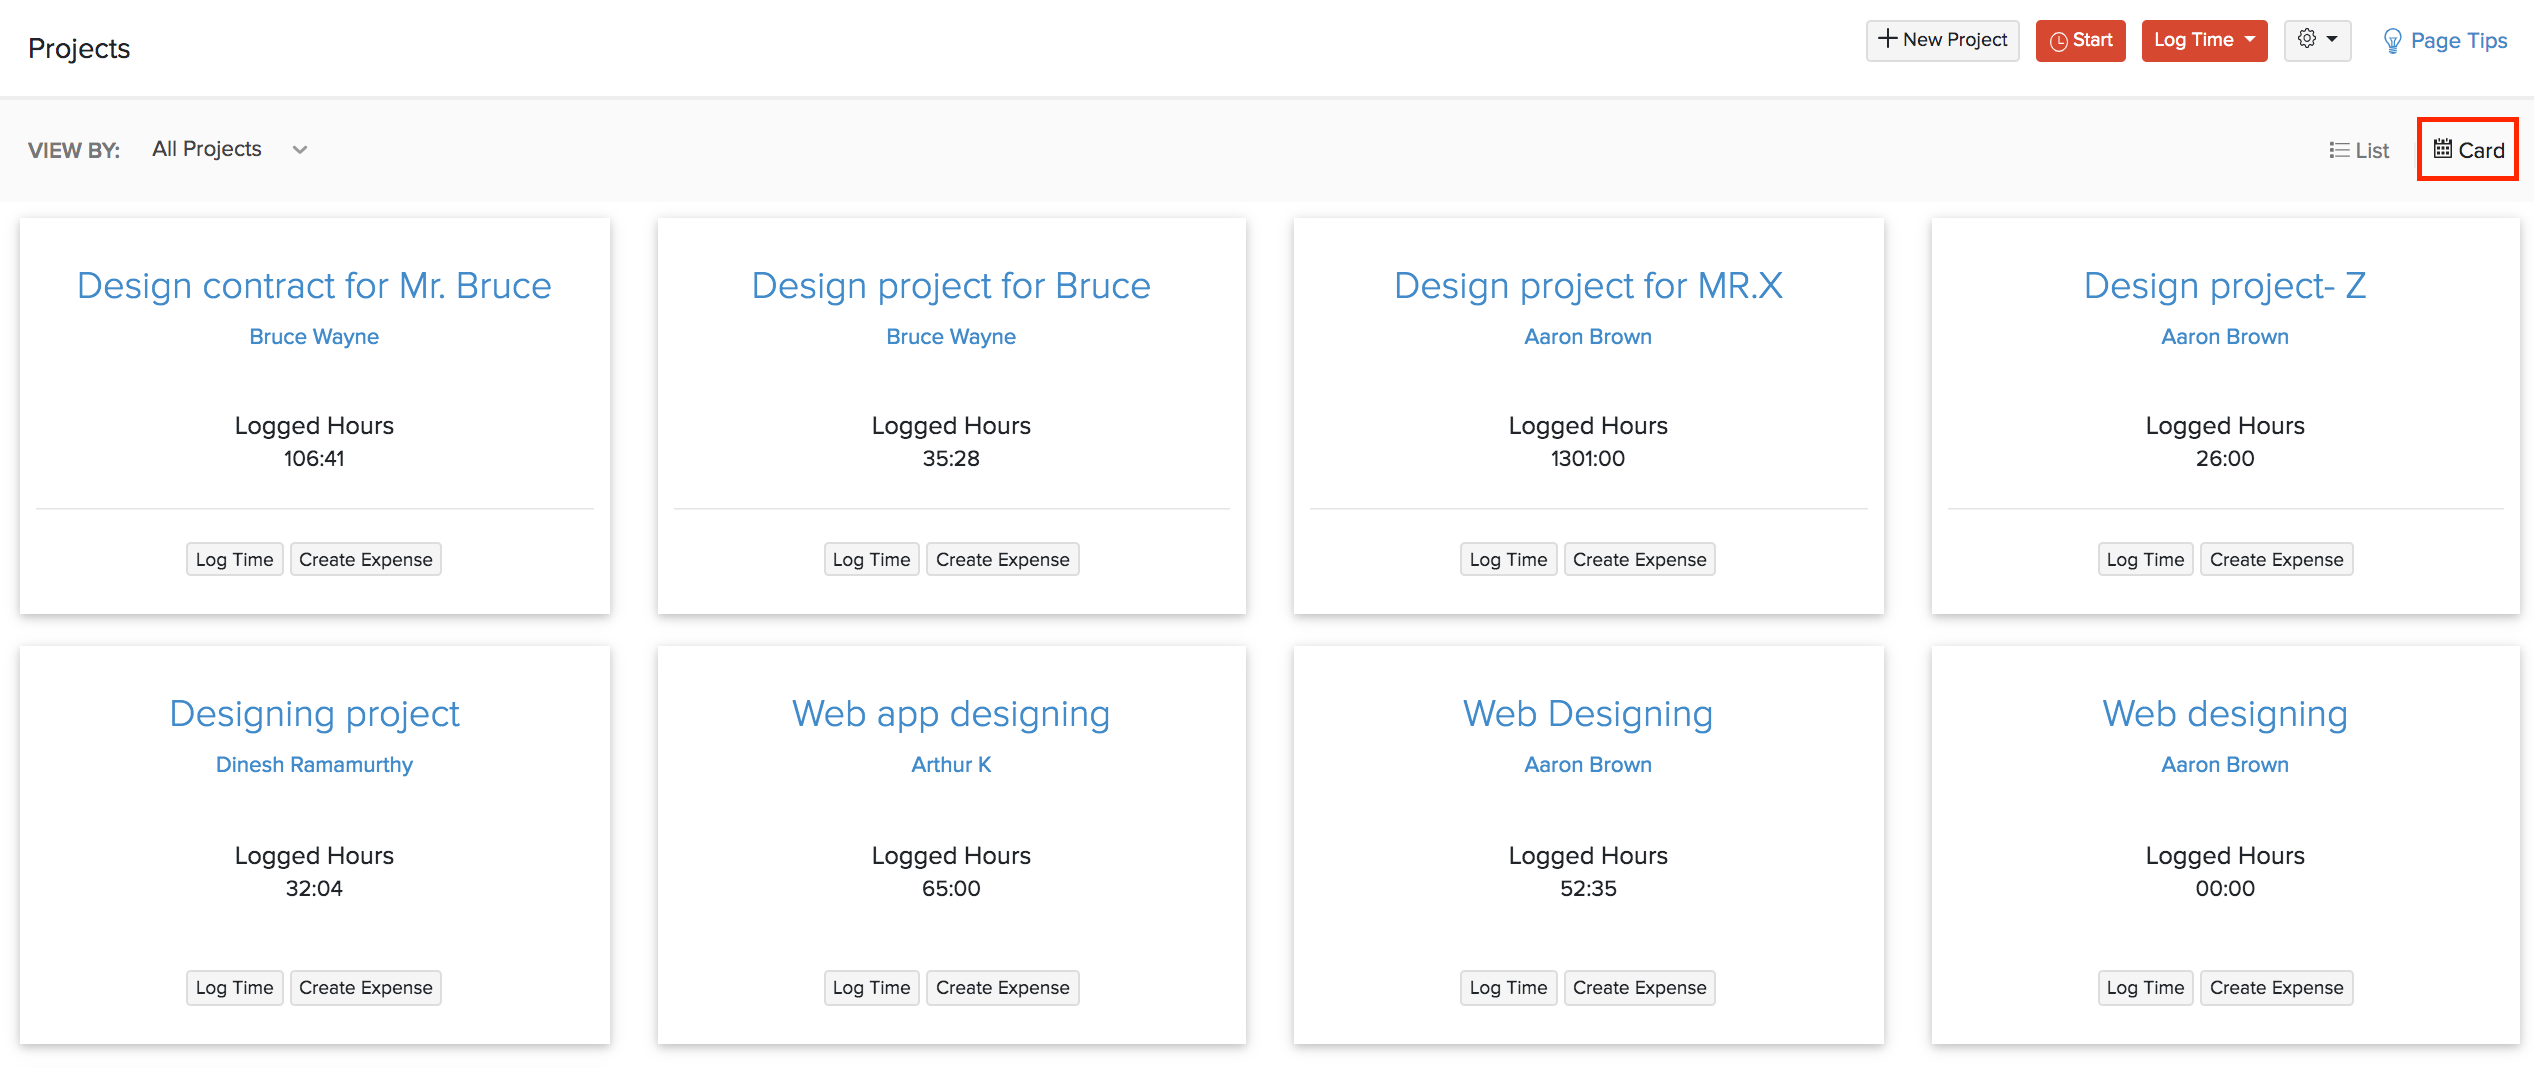 Card View Projects